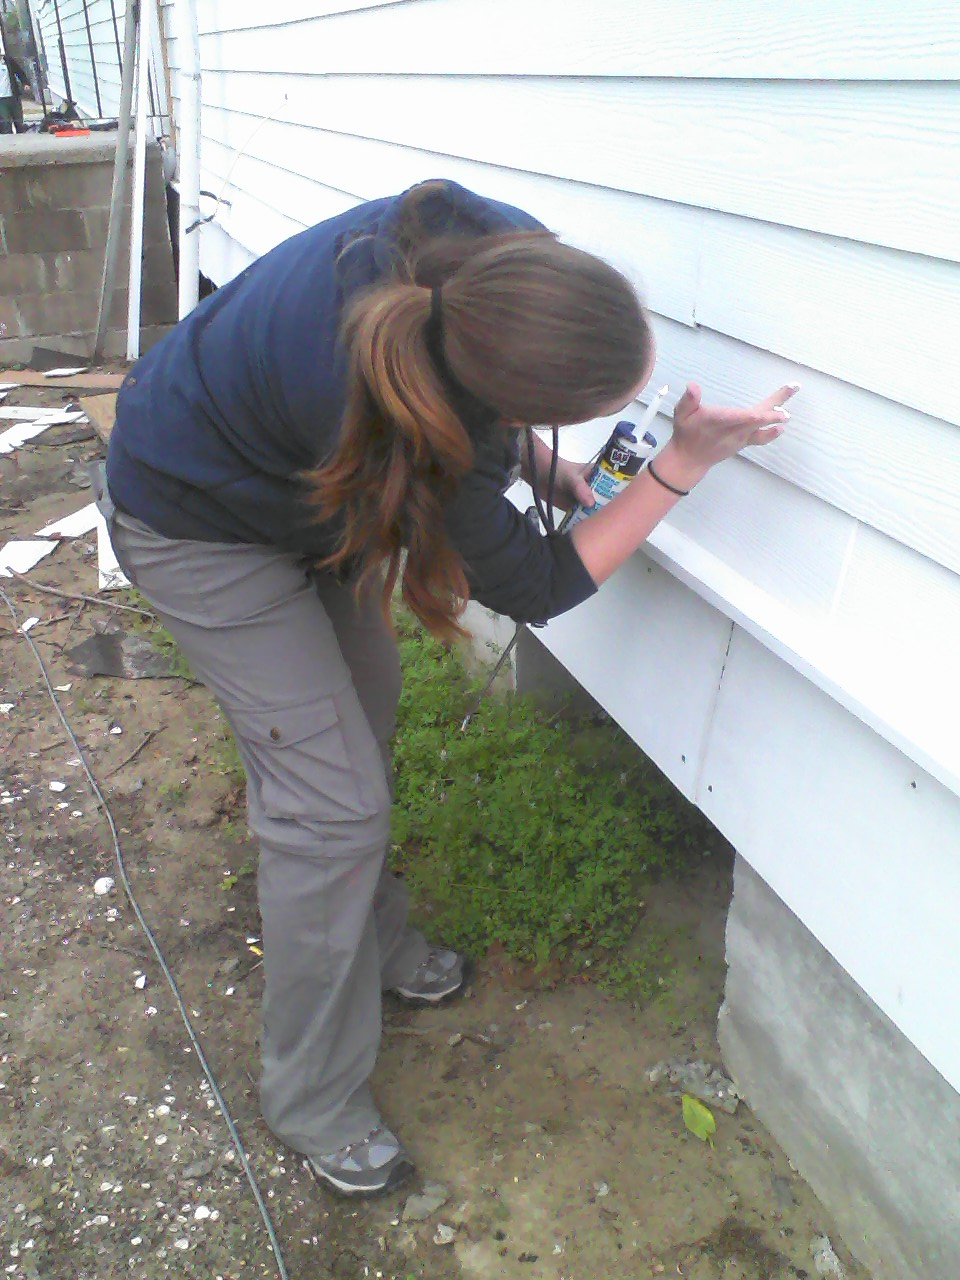 ...and caulking low.